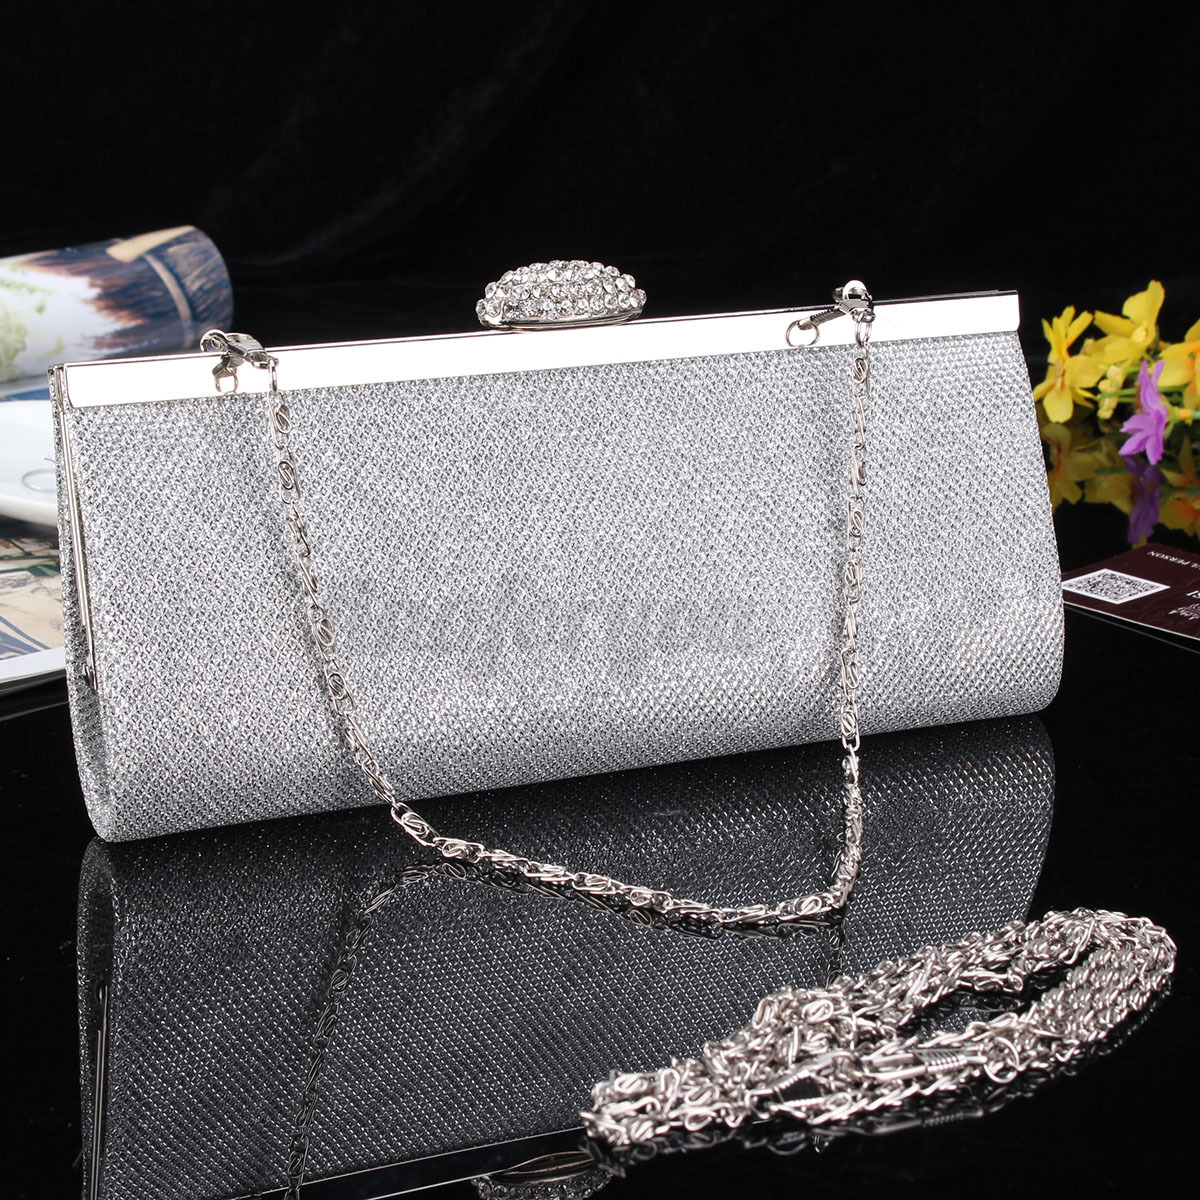 WOMEN SPARKLY GLITTER CLUTCH BAG WEDDING BRIDAL PROM PARTY EVENING HANDBAG PURSE | EBay